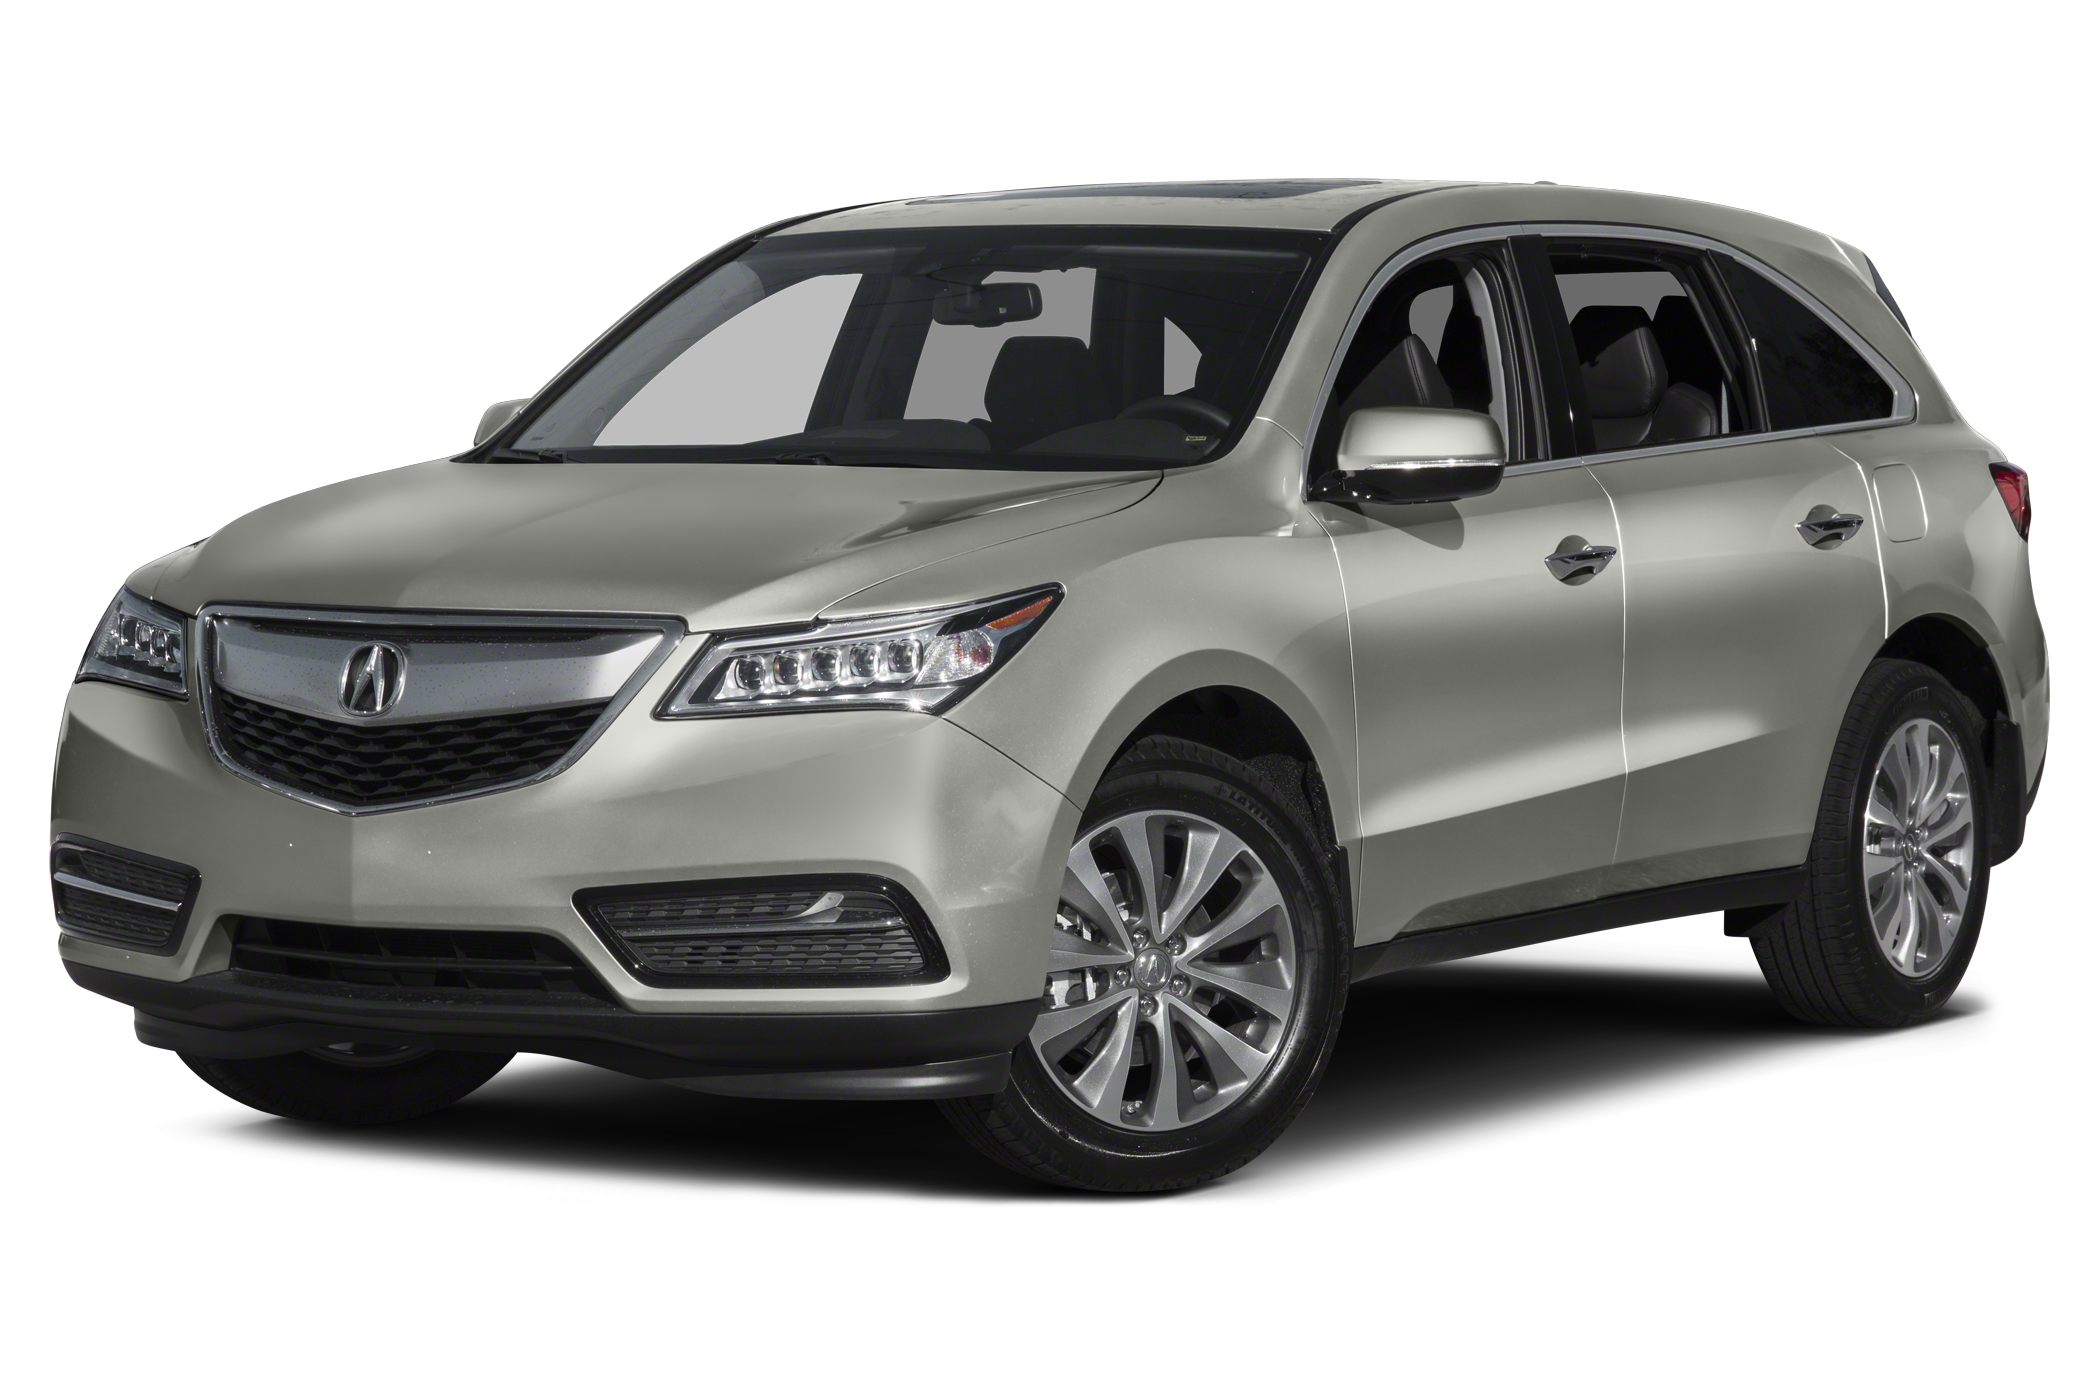 2015 Acura MDX 3 5L Technology Package 4dr Front wheel Drive